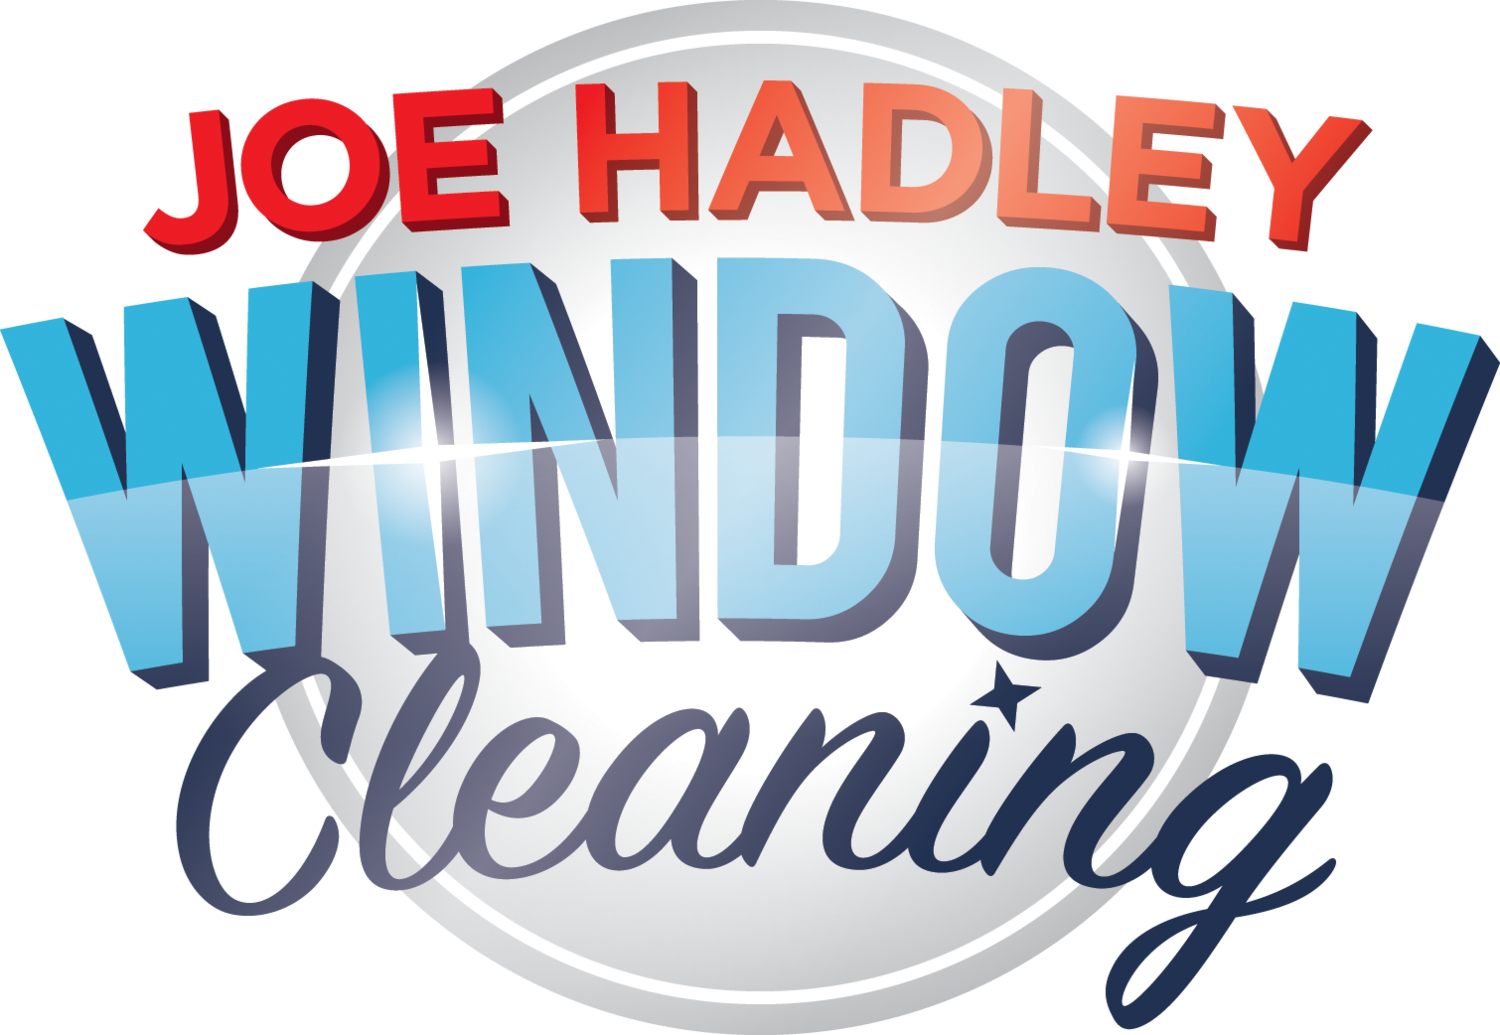 Joe Hadley Window Cleaning